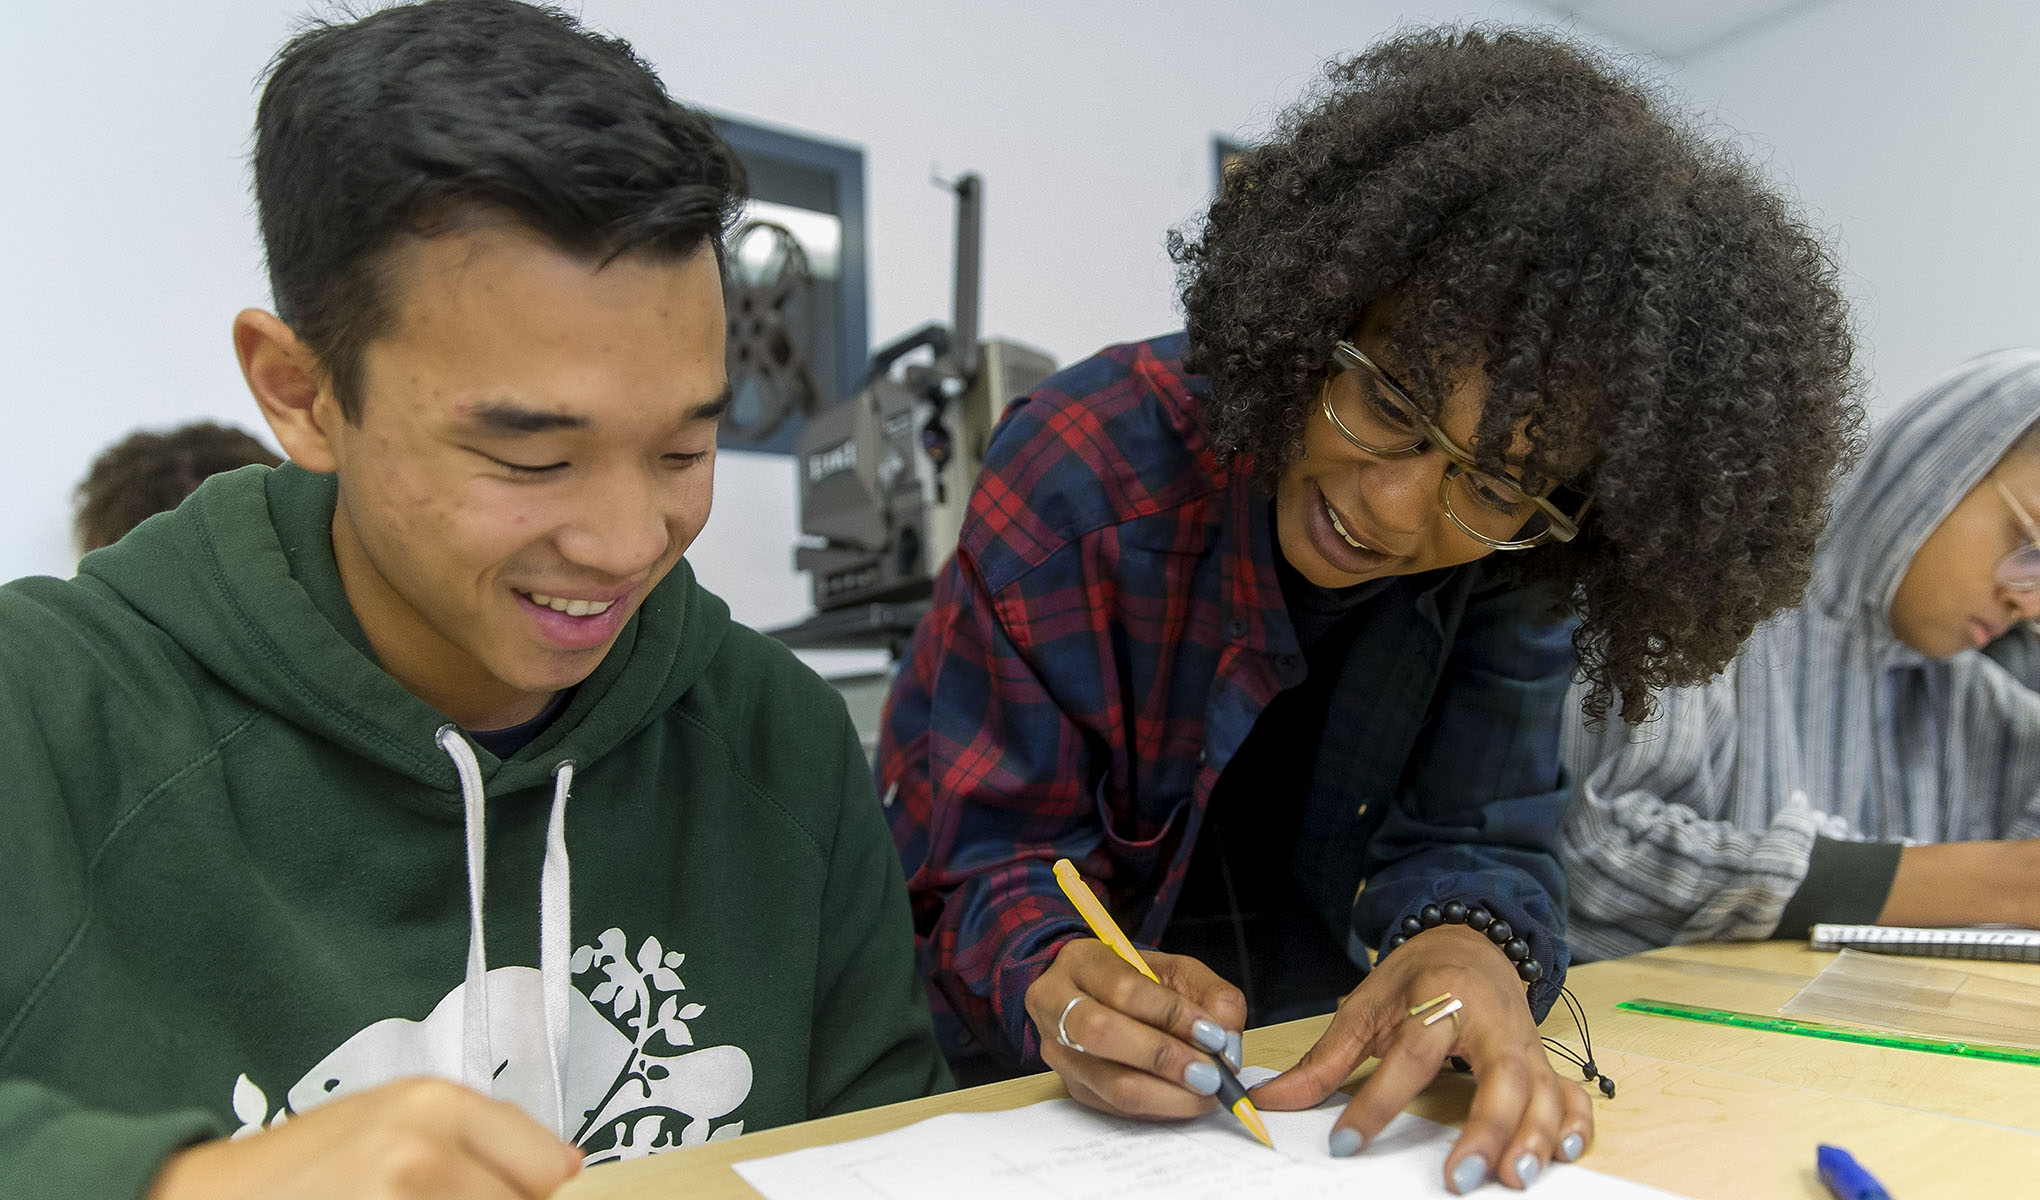 Female helping male student with written work